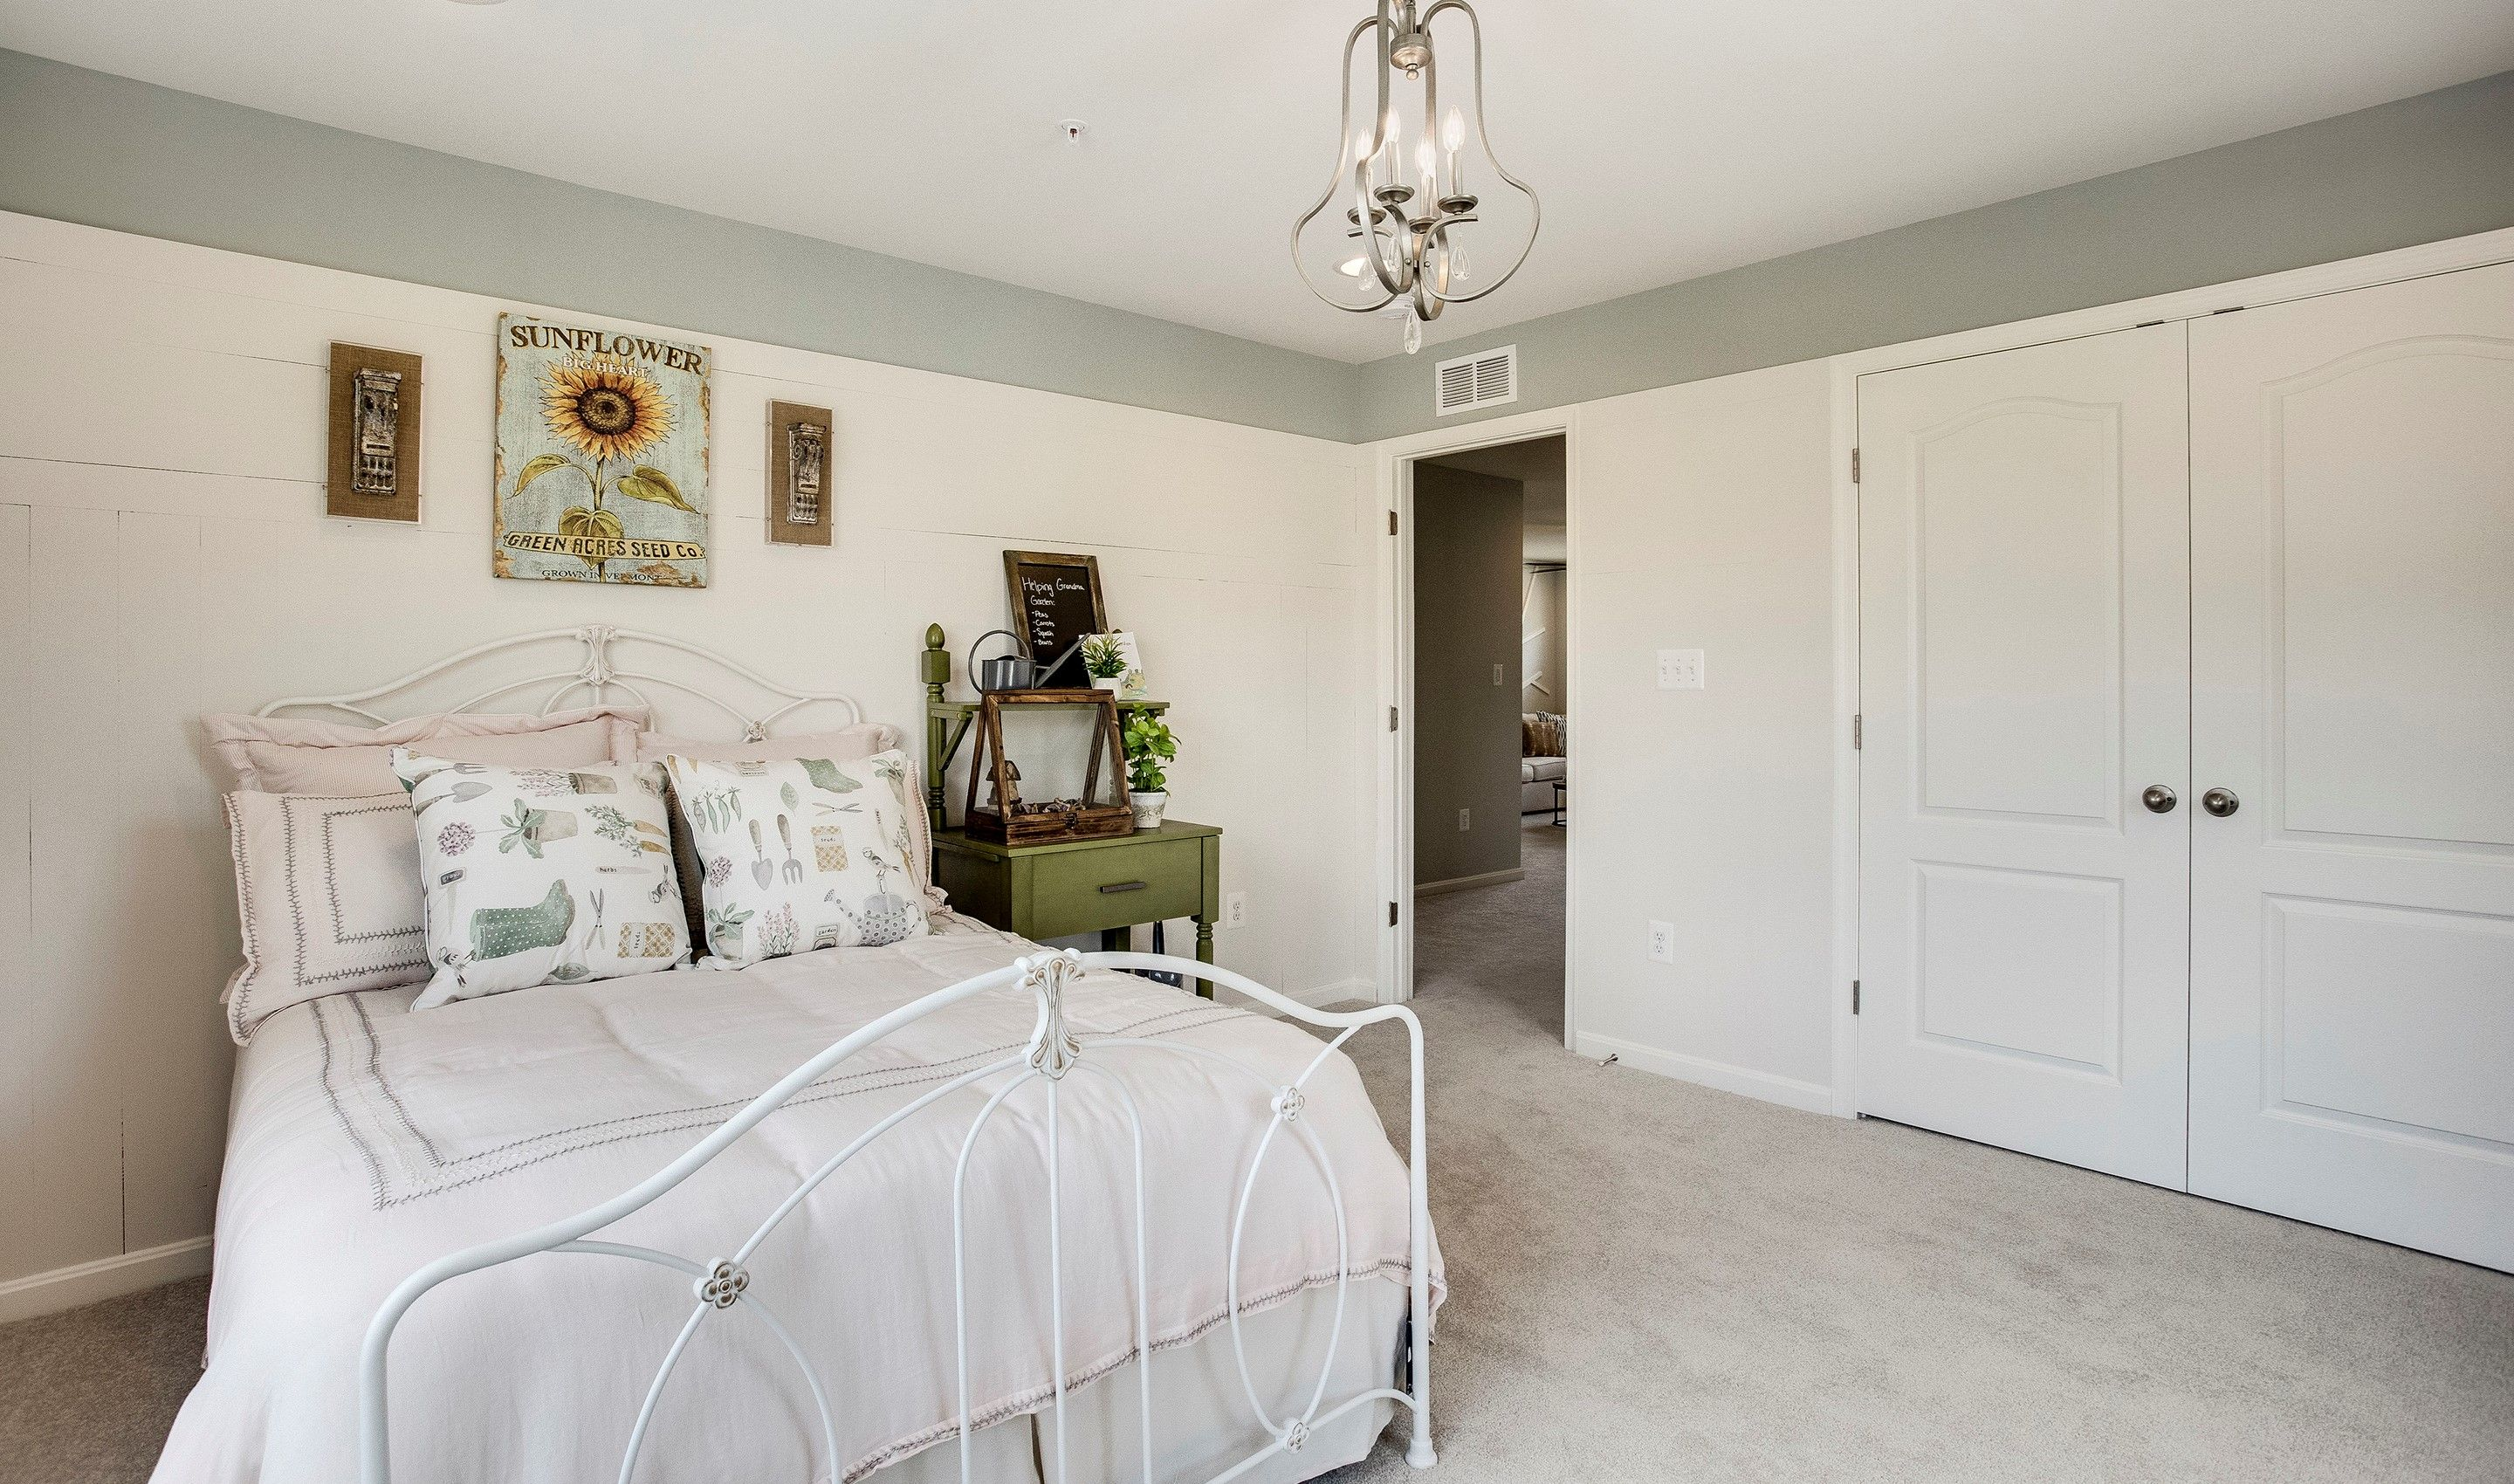 Bedroom featured in the Westminster - Basement By K. Hovnanian® Homes in Washington, MD